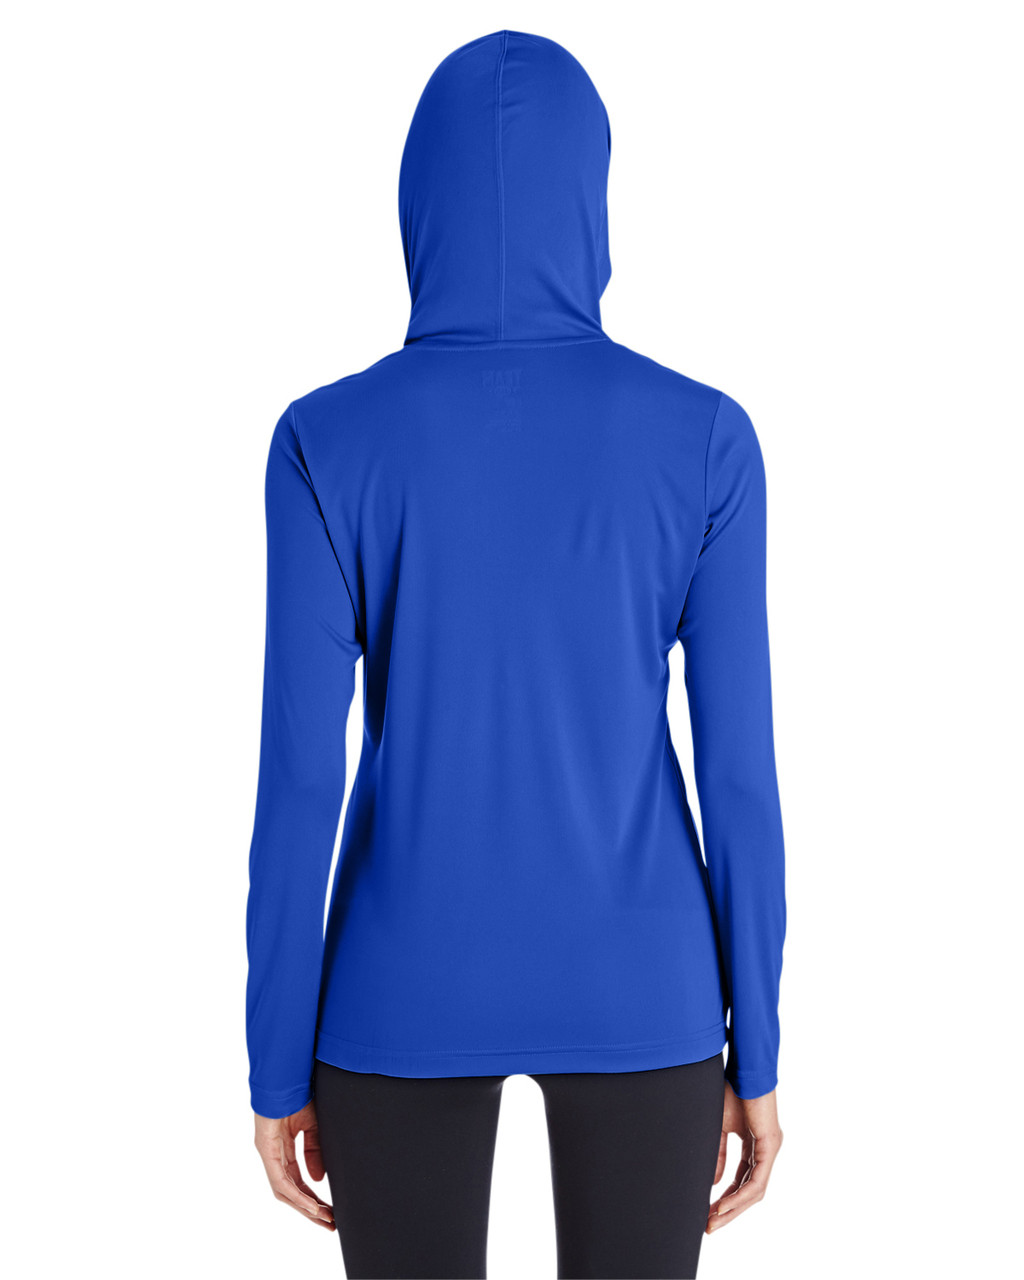 Sport Royal - TT41W Team 365 Ladies' Zone Performance Hoodie